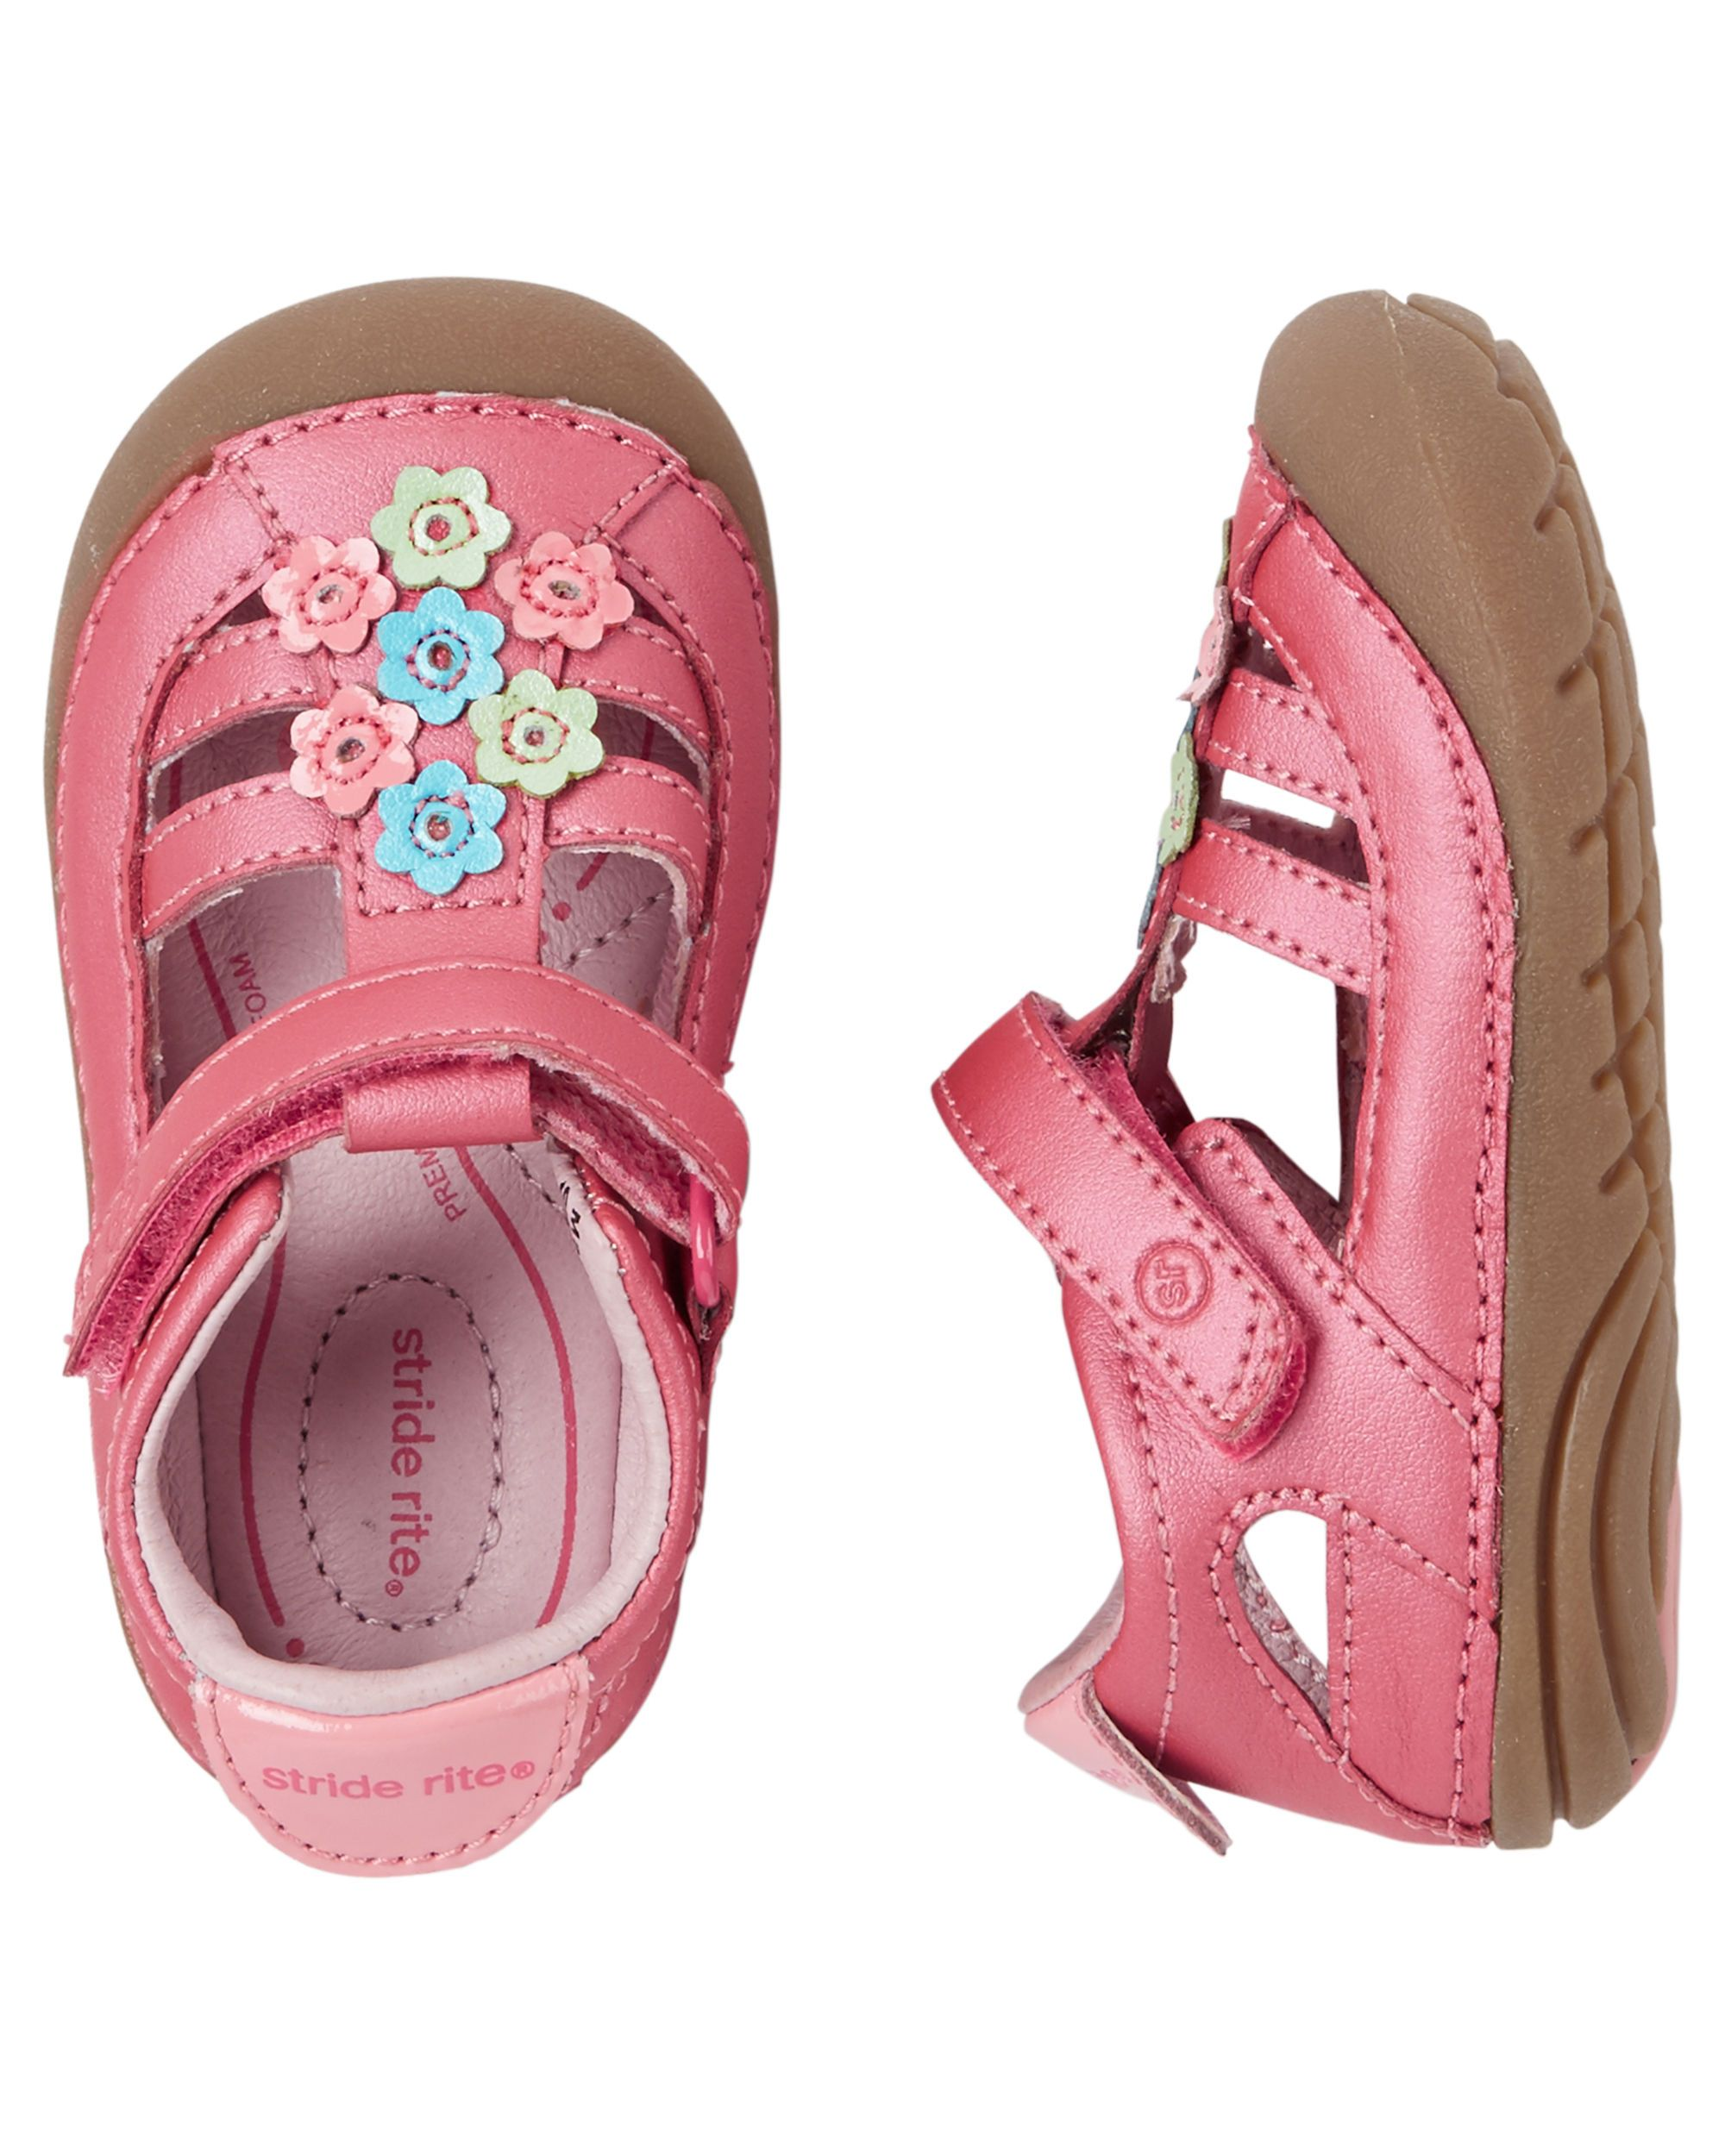 e9747d004 Stride Rite Soft Motion Luisa Sandal | stride rite baby girl shoes ...